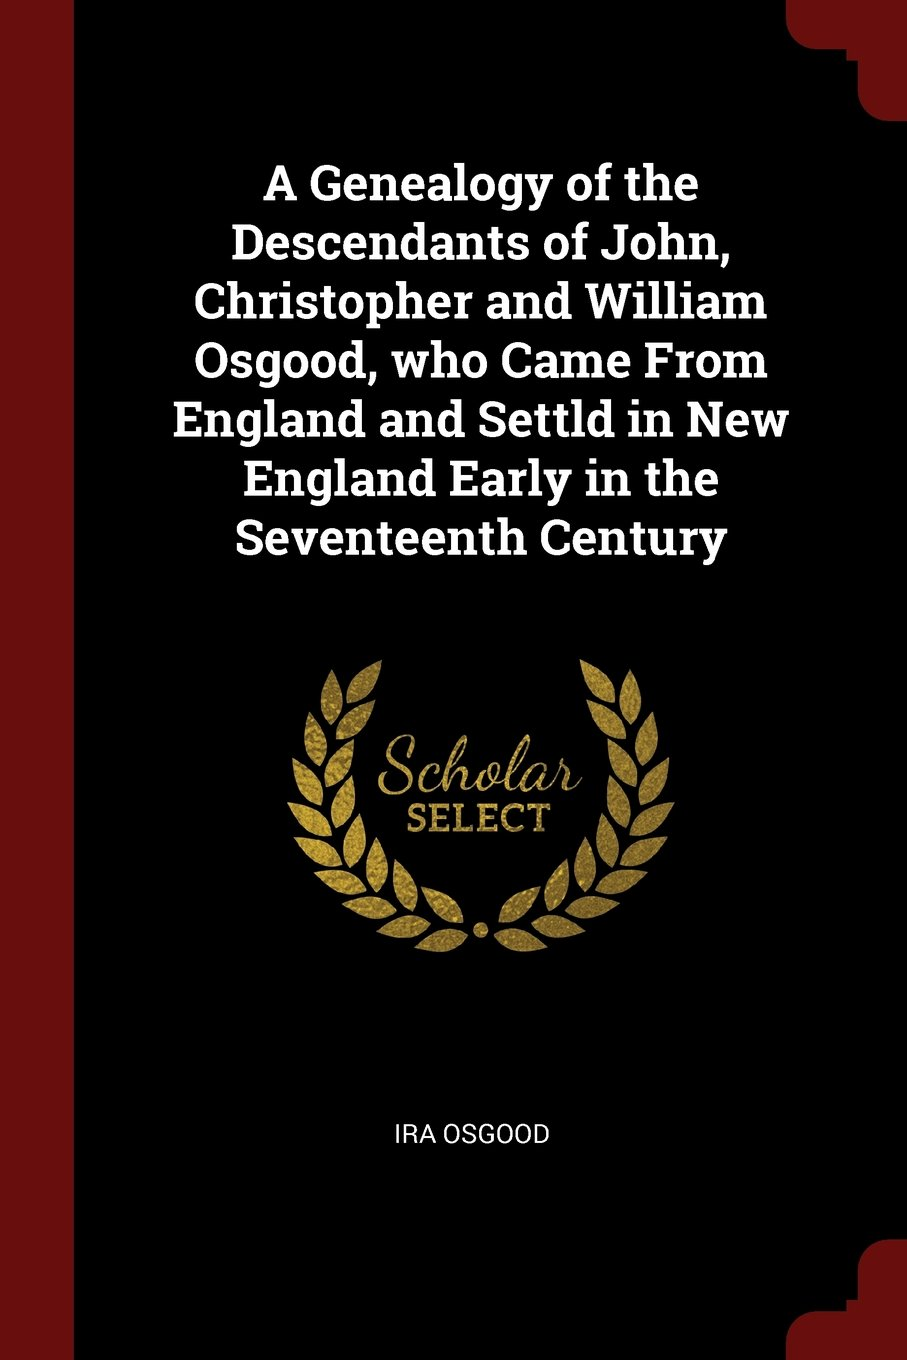 A Genealogy of the Descendants of John, Christopher and William Osgood, who Came From England and Settld in New England Early in the Seventeenth Century ebook